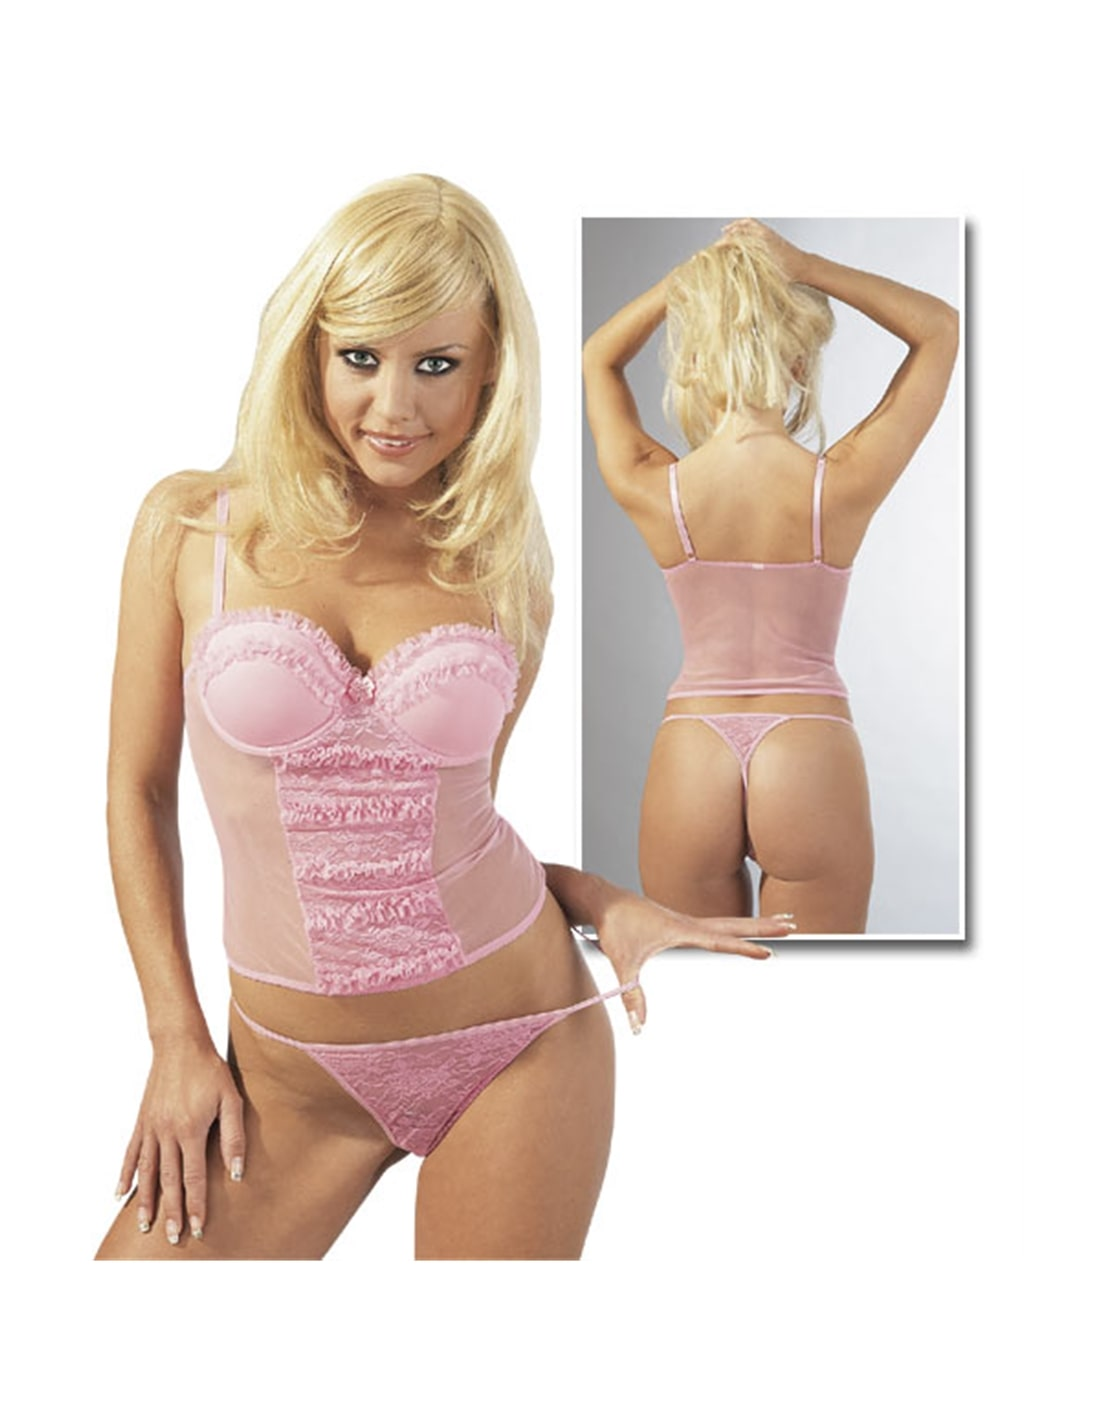 02145310000 - Top Rosa Com Tanga 80B/M - 80B/M-DO29000543